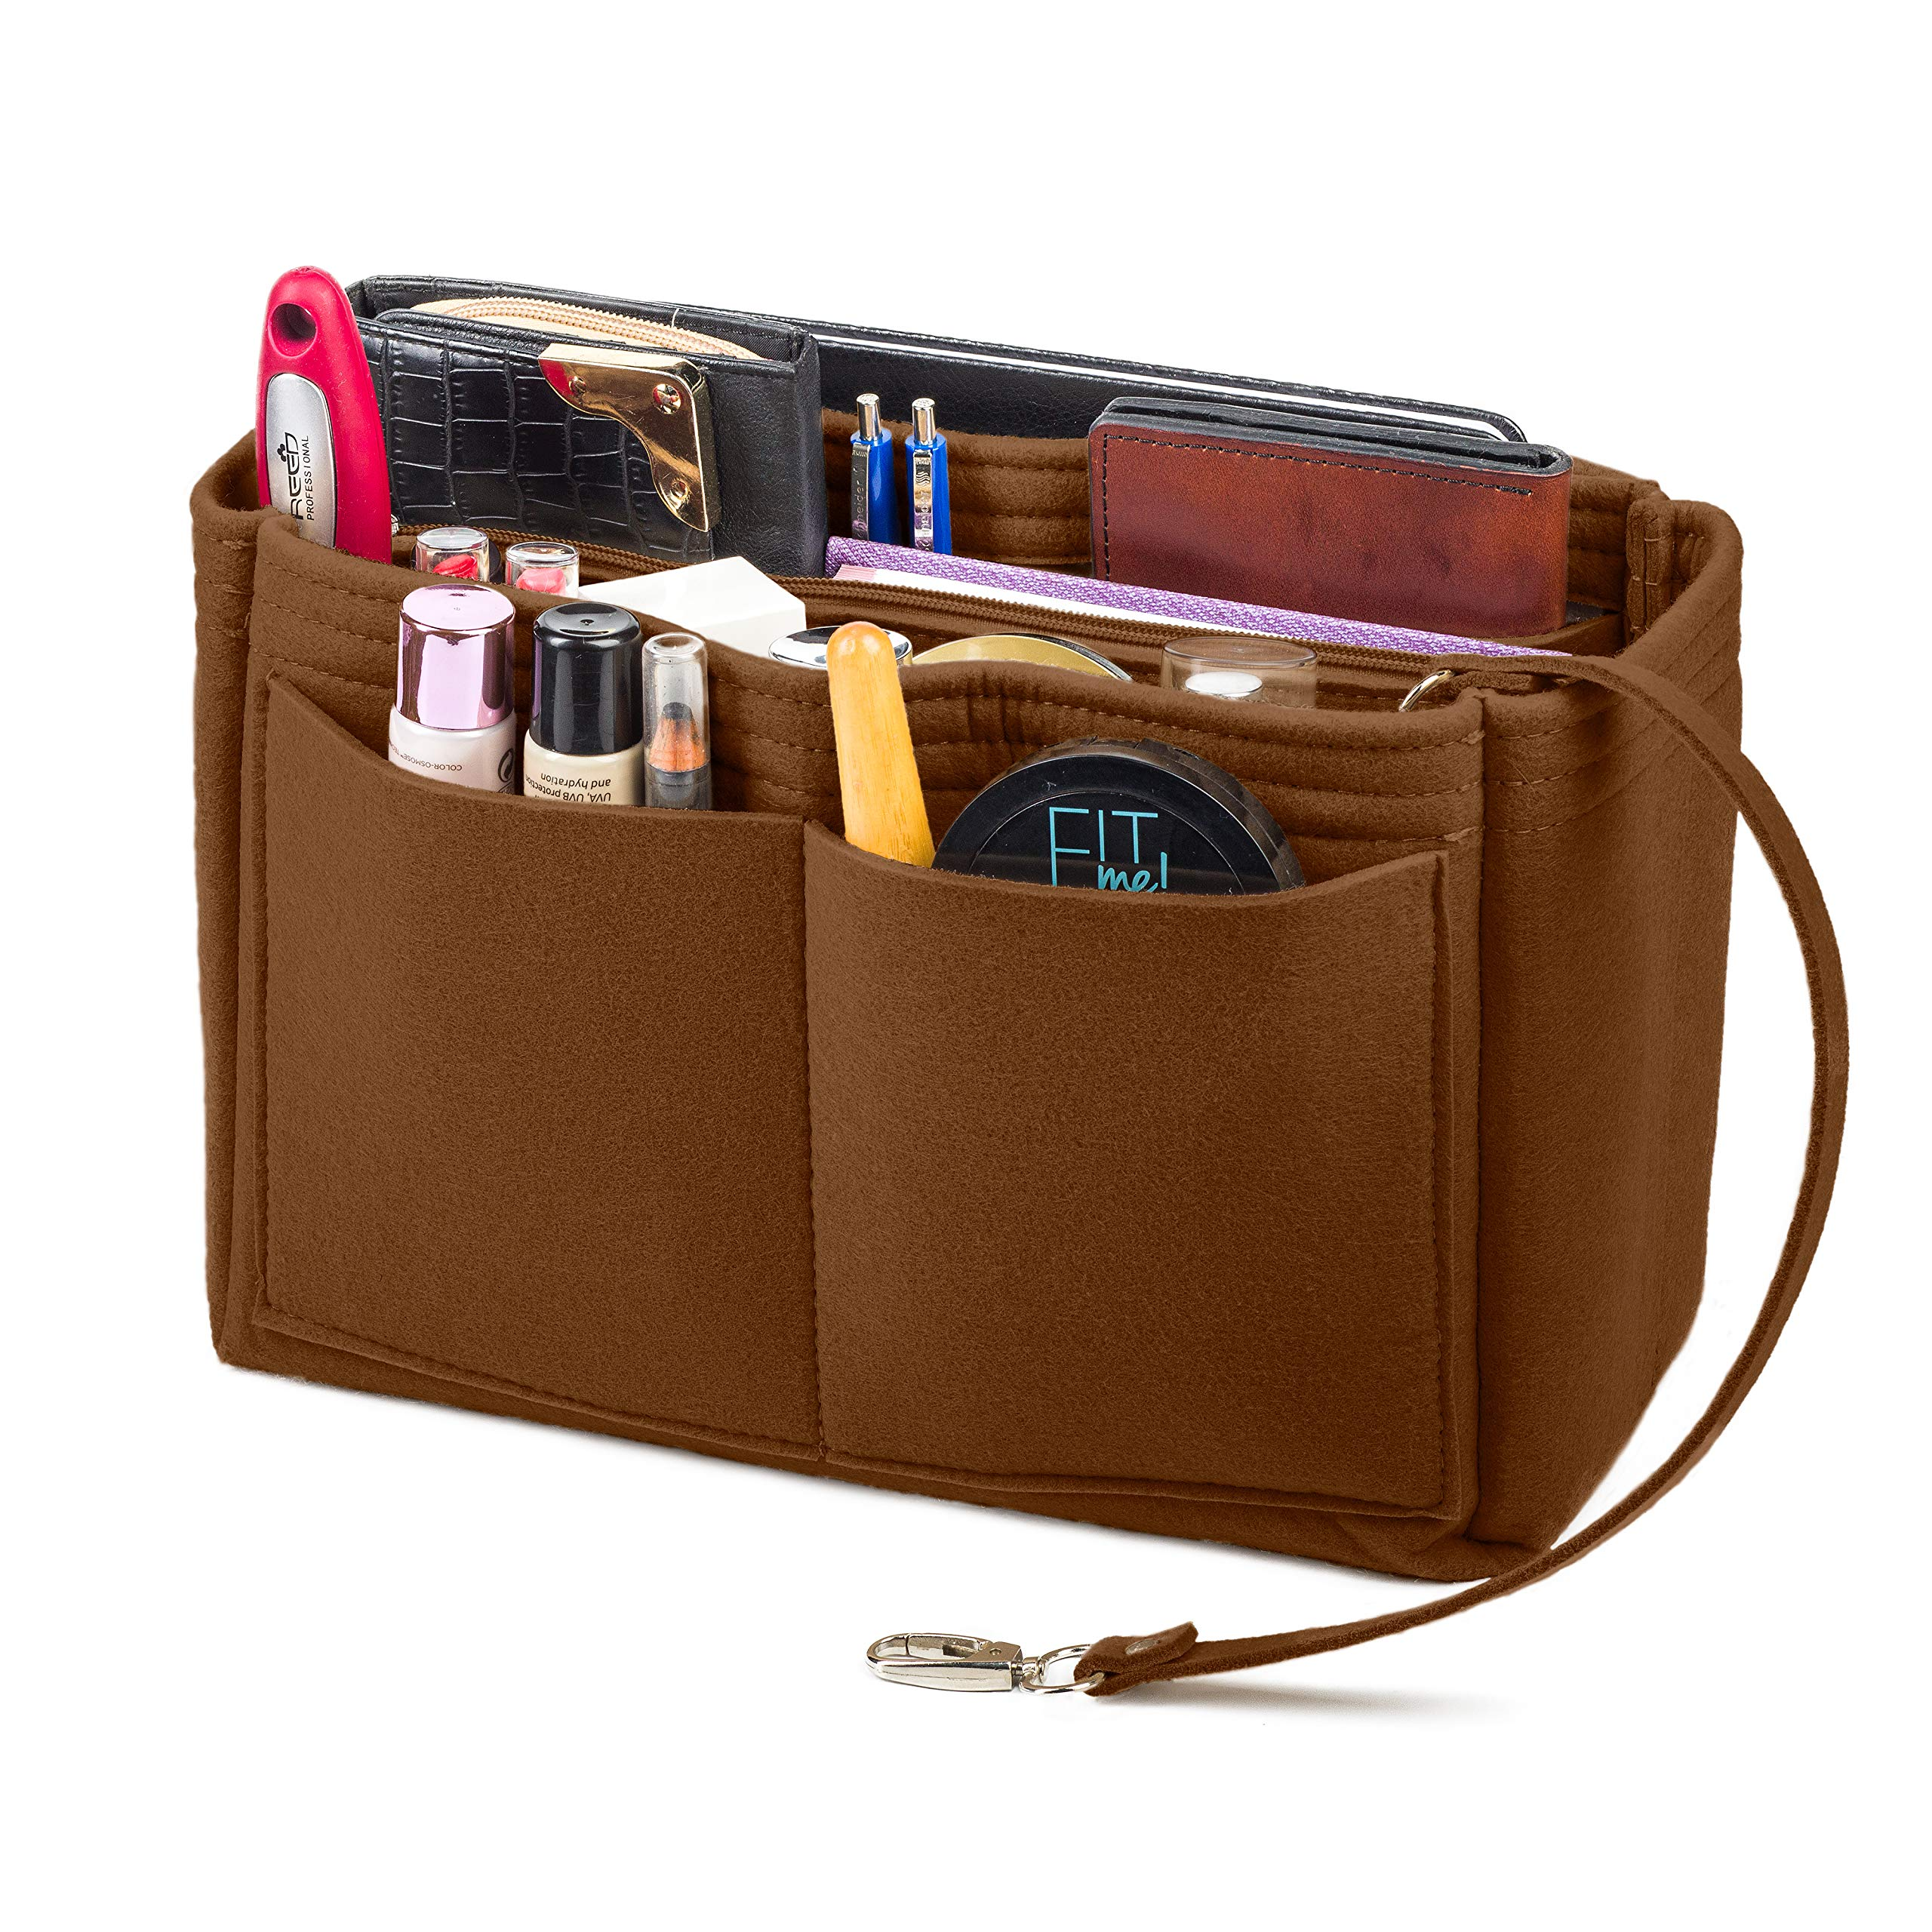 Purse Organizer Insert, Felt Bag Organizer with Zipper on Removable Handbag, Fits LV Speedy, Neverfull, Longchamp, Tote (Large, Light Coffee) by Lenox Trading Company